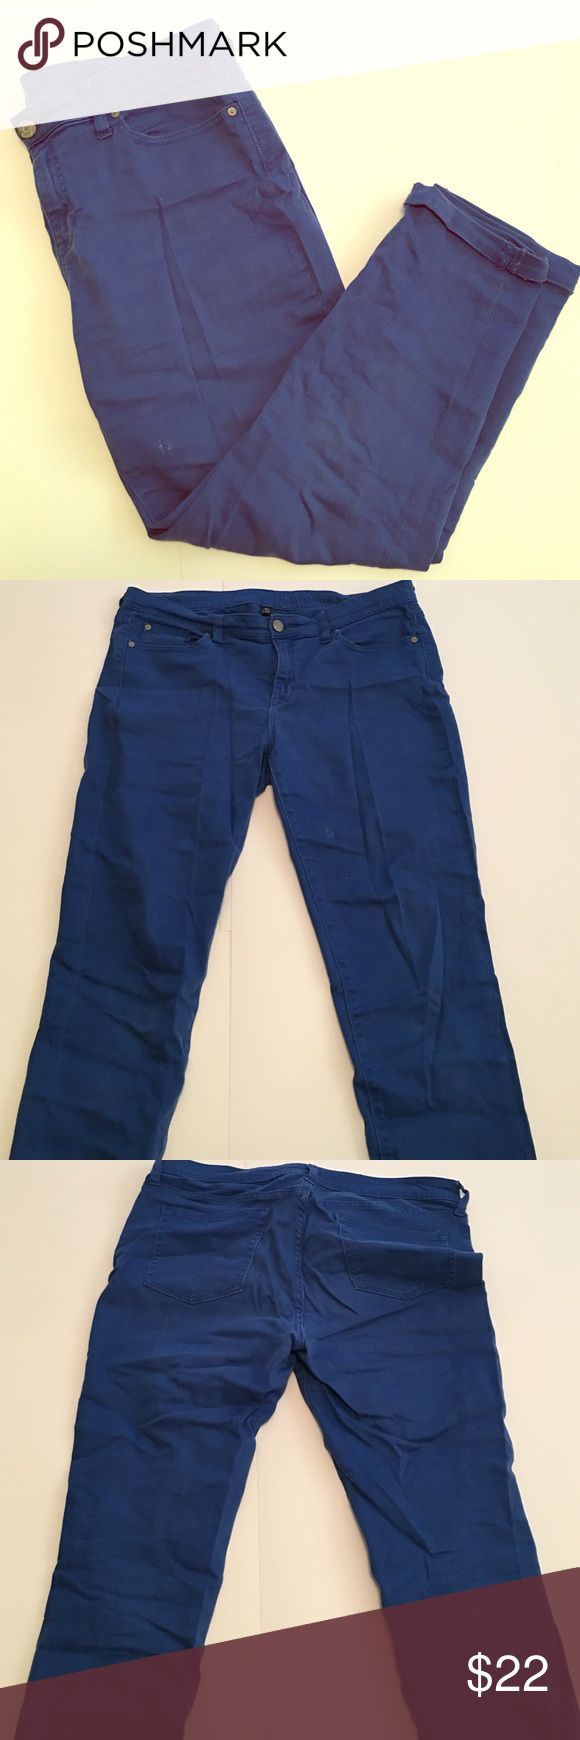 Royal blue skinny jeans These are a great pair of casual skinnies perfect to dress up or down. They have two little stains on the left thigh (pictured) but are in great condition. They do loosen up during the day. Old Navy Jeans Ankle & Cropped